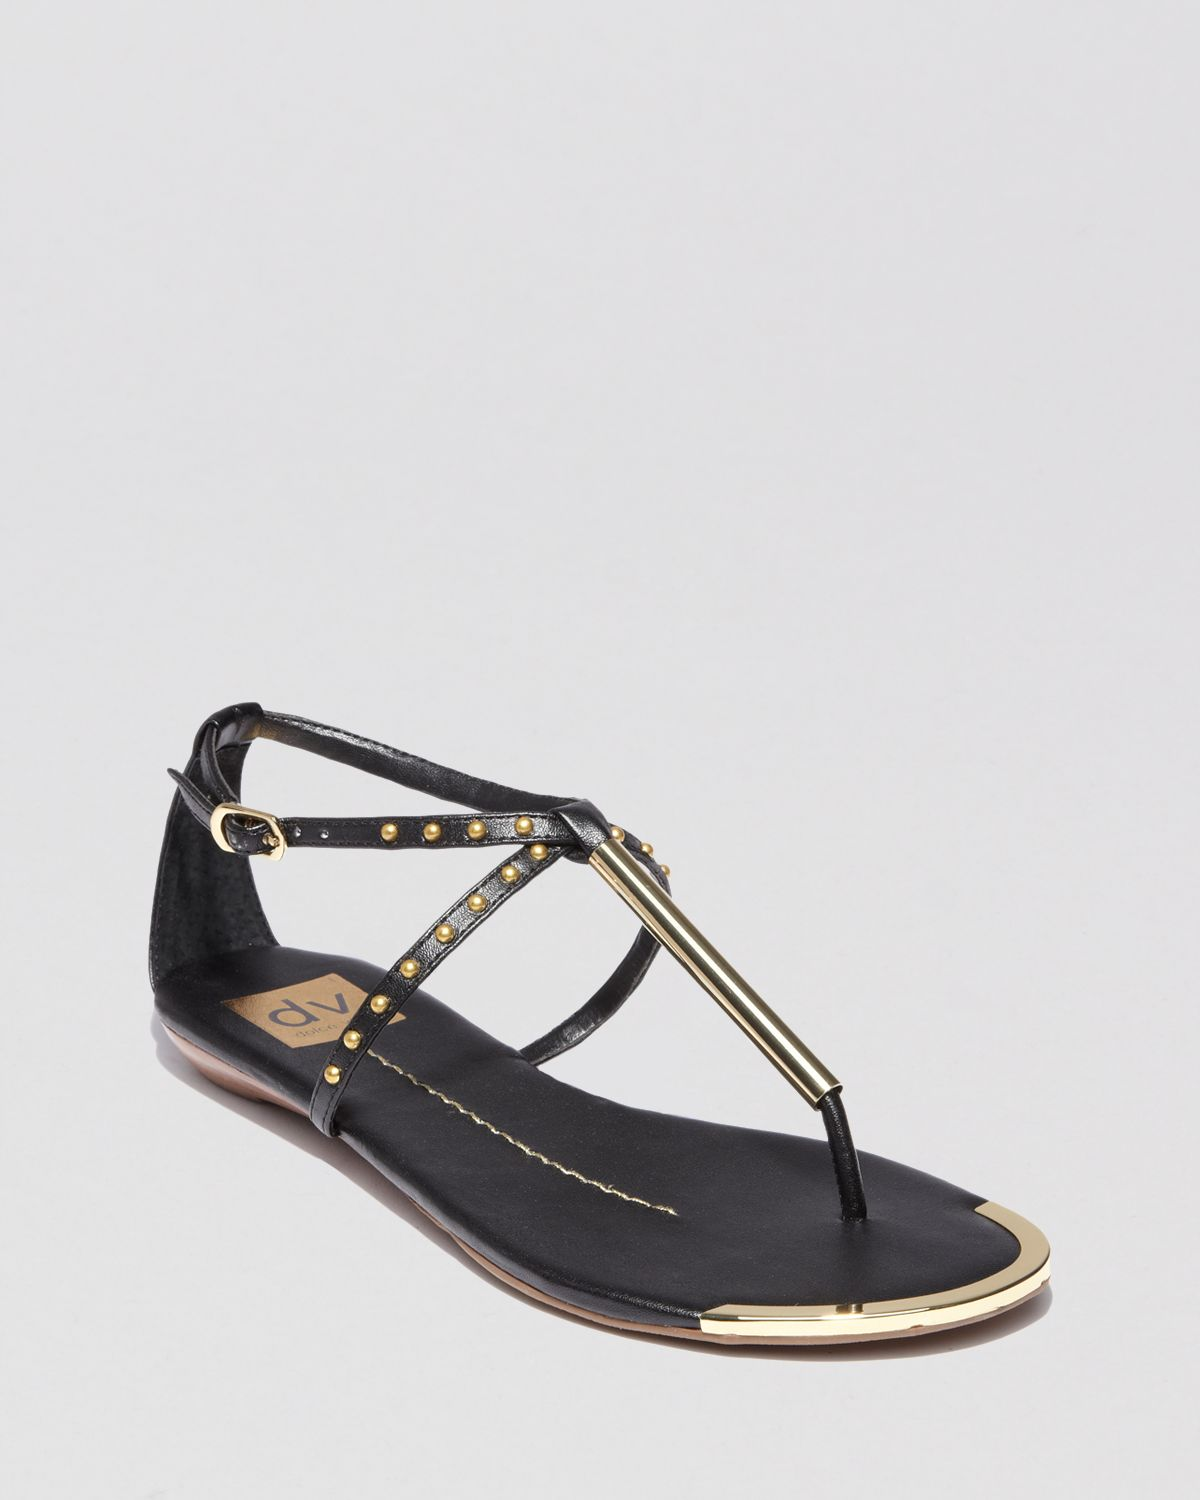 88afd227d44b Lyst - Dolce Vita Dv Flat Thong Sandals Apollo Studded in Black